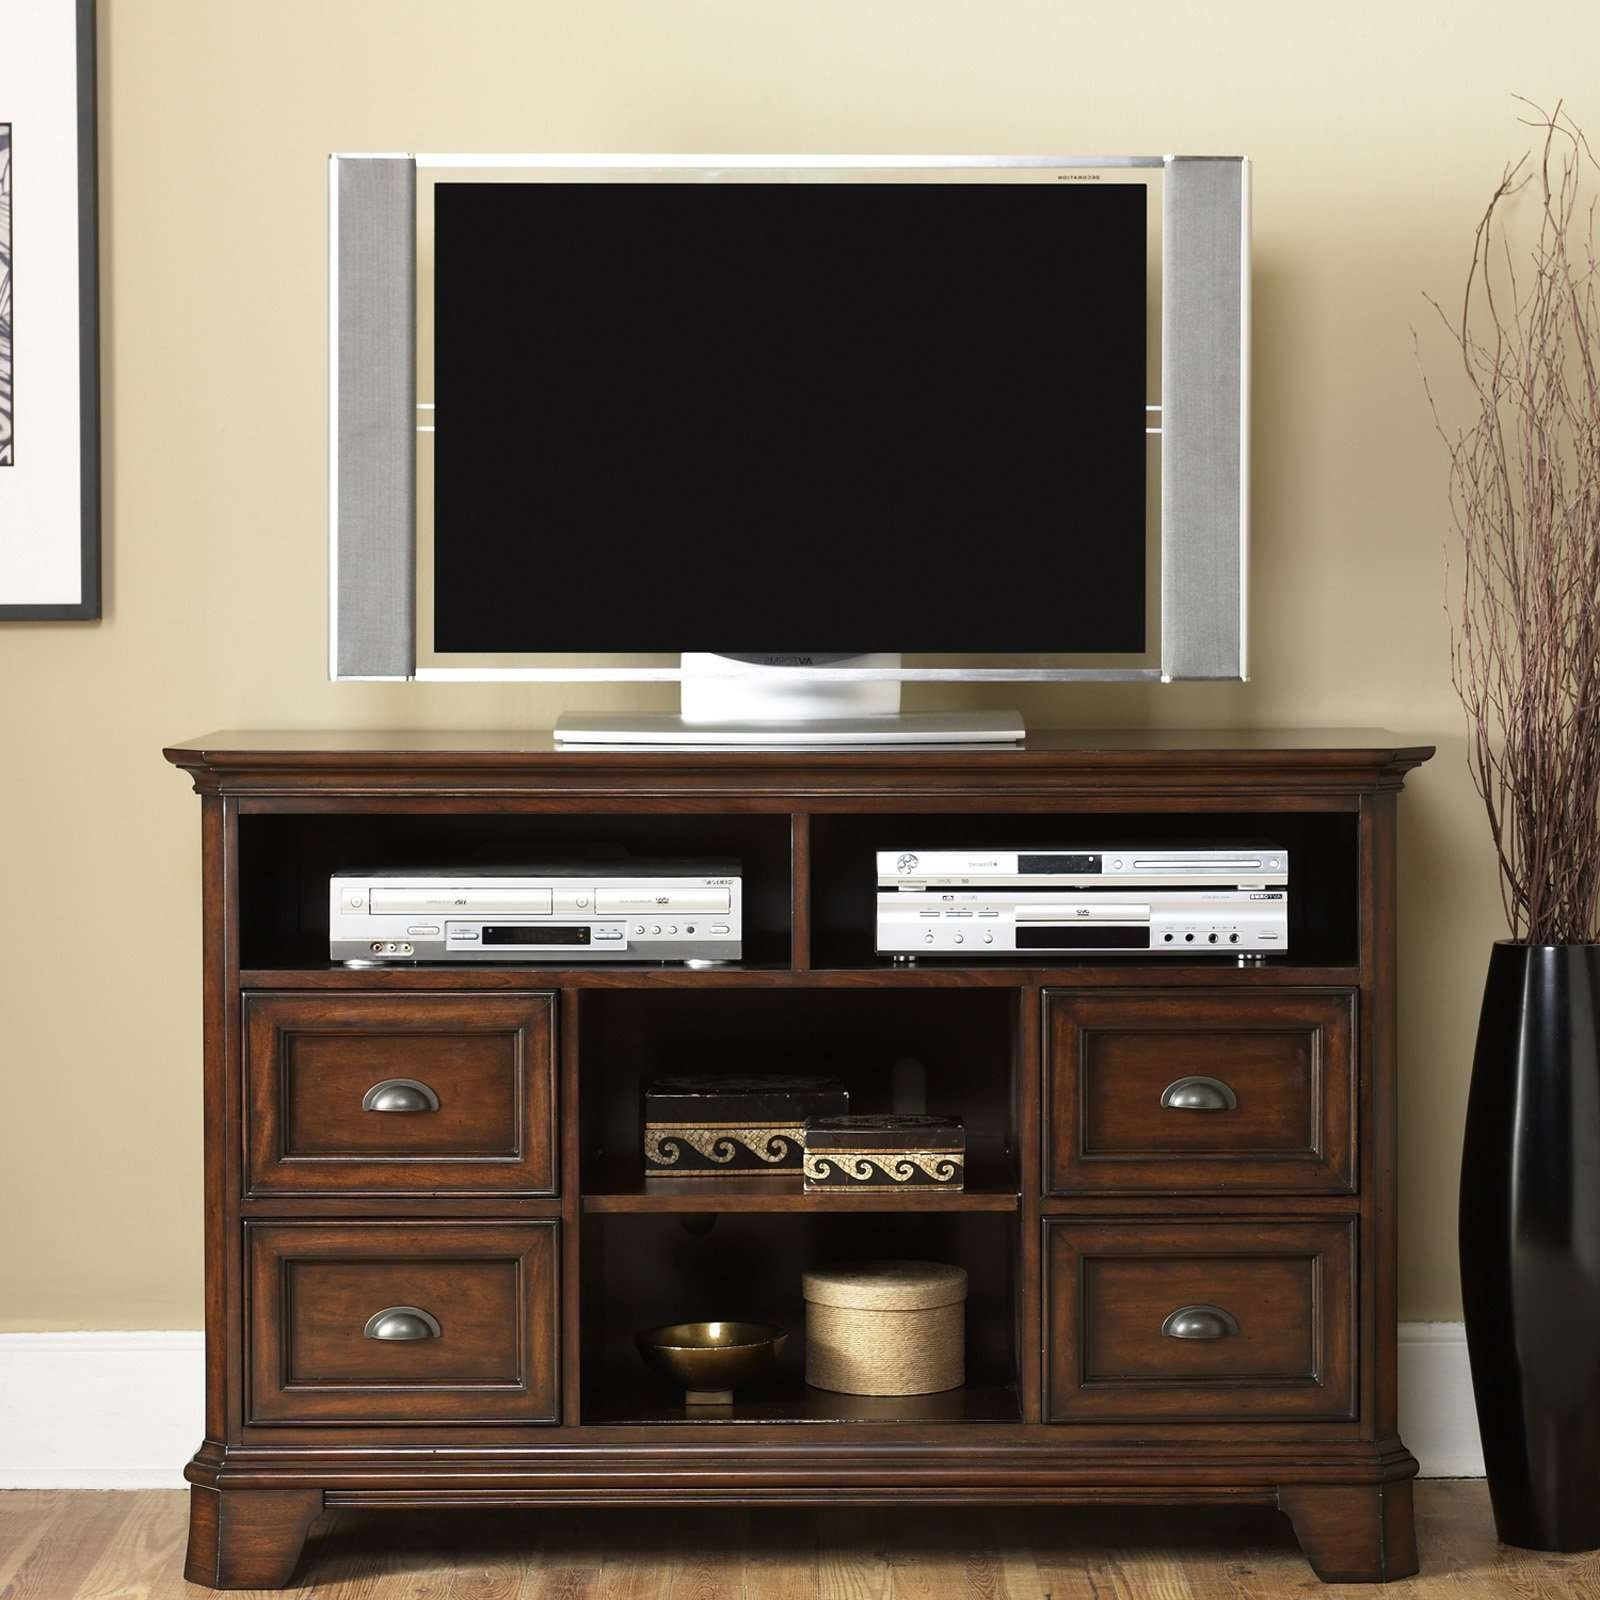 Bedroom Design : Awesome Small Corner Tv Stand Wooden Tv Stands 32 Regarding 32 Inch Corner Tv Stands (View 12 of 15)